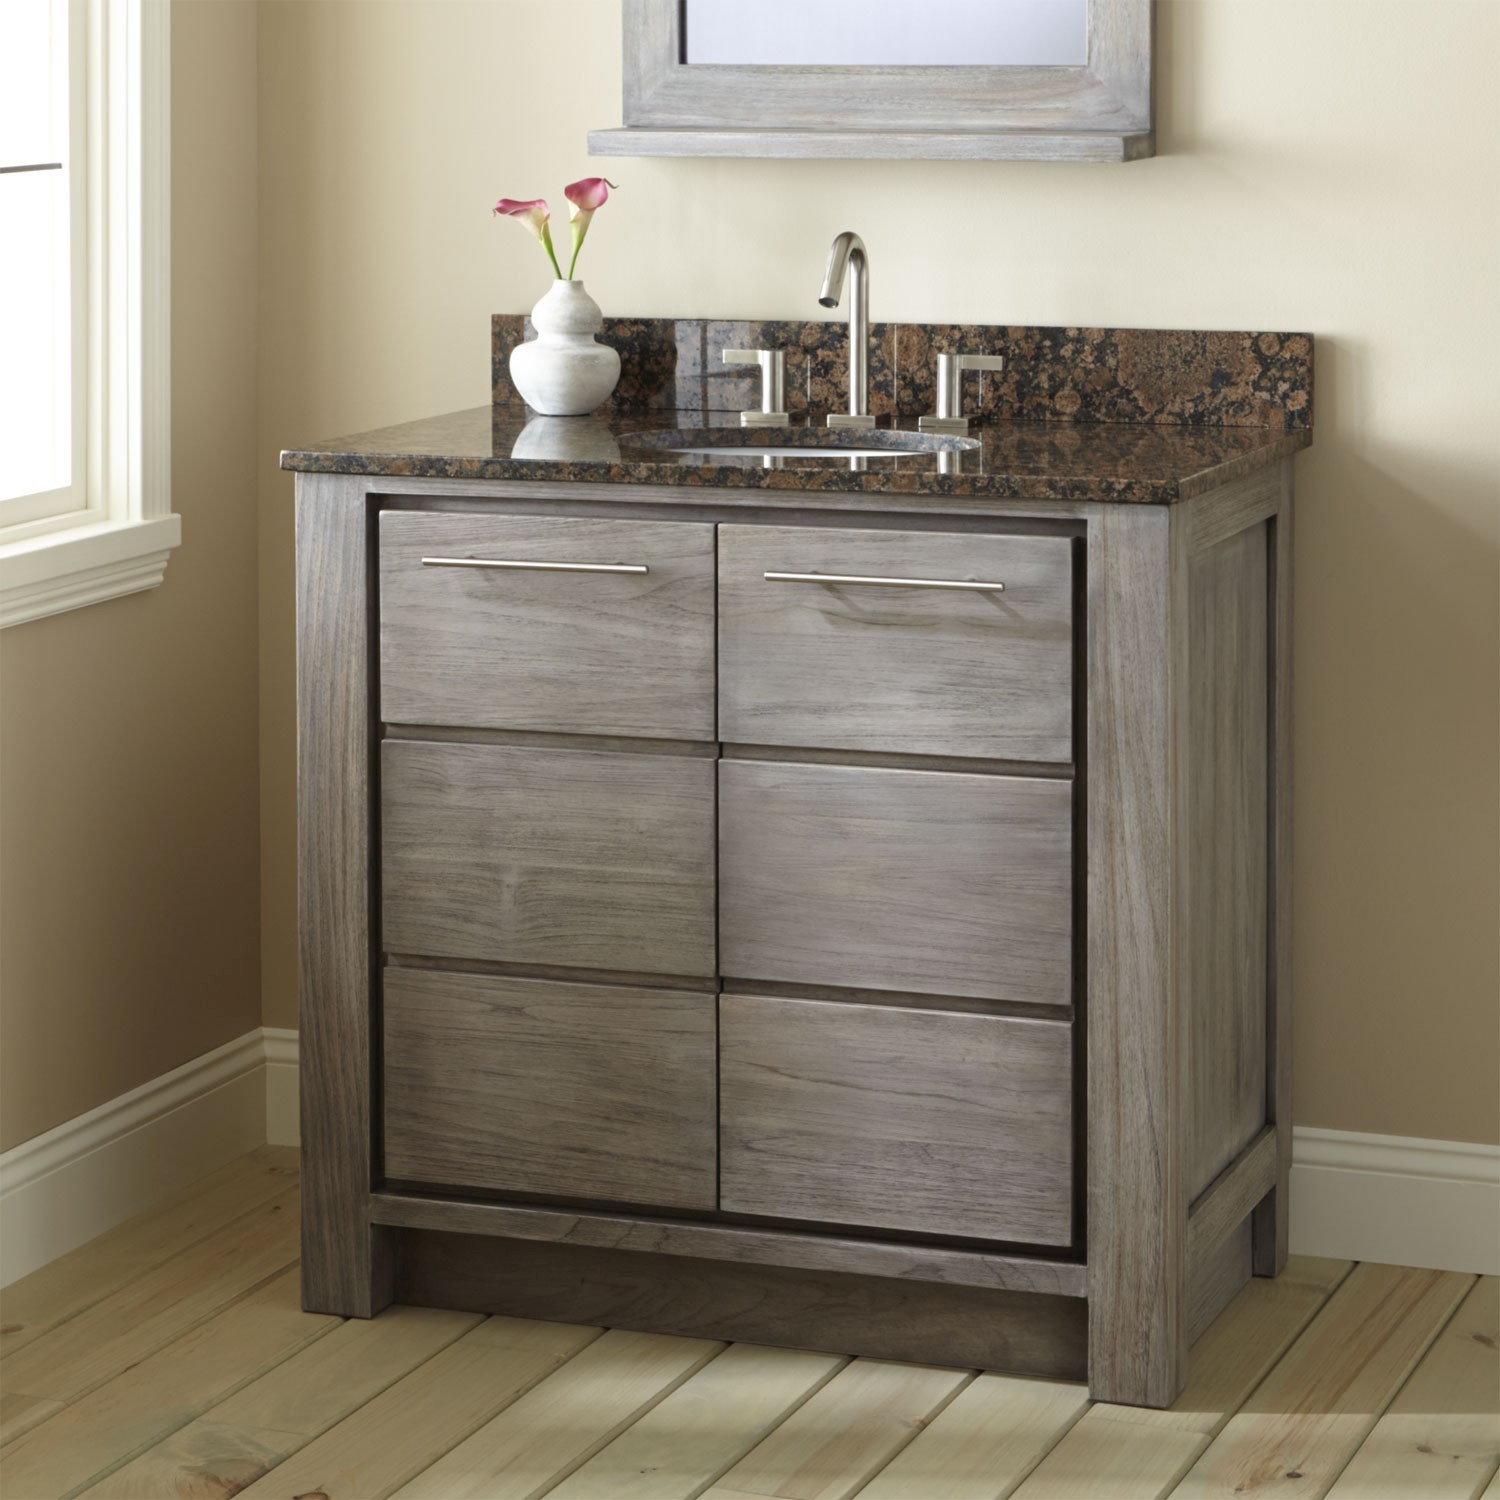 36 Inch Bathroom Vanity Stylish Venica Teak Vanity for Undermount Sink Gray Wash Bathroom Pattern